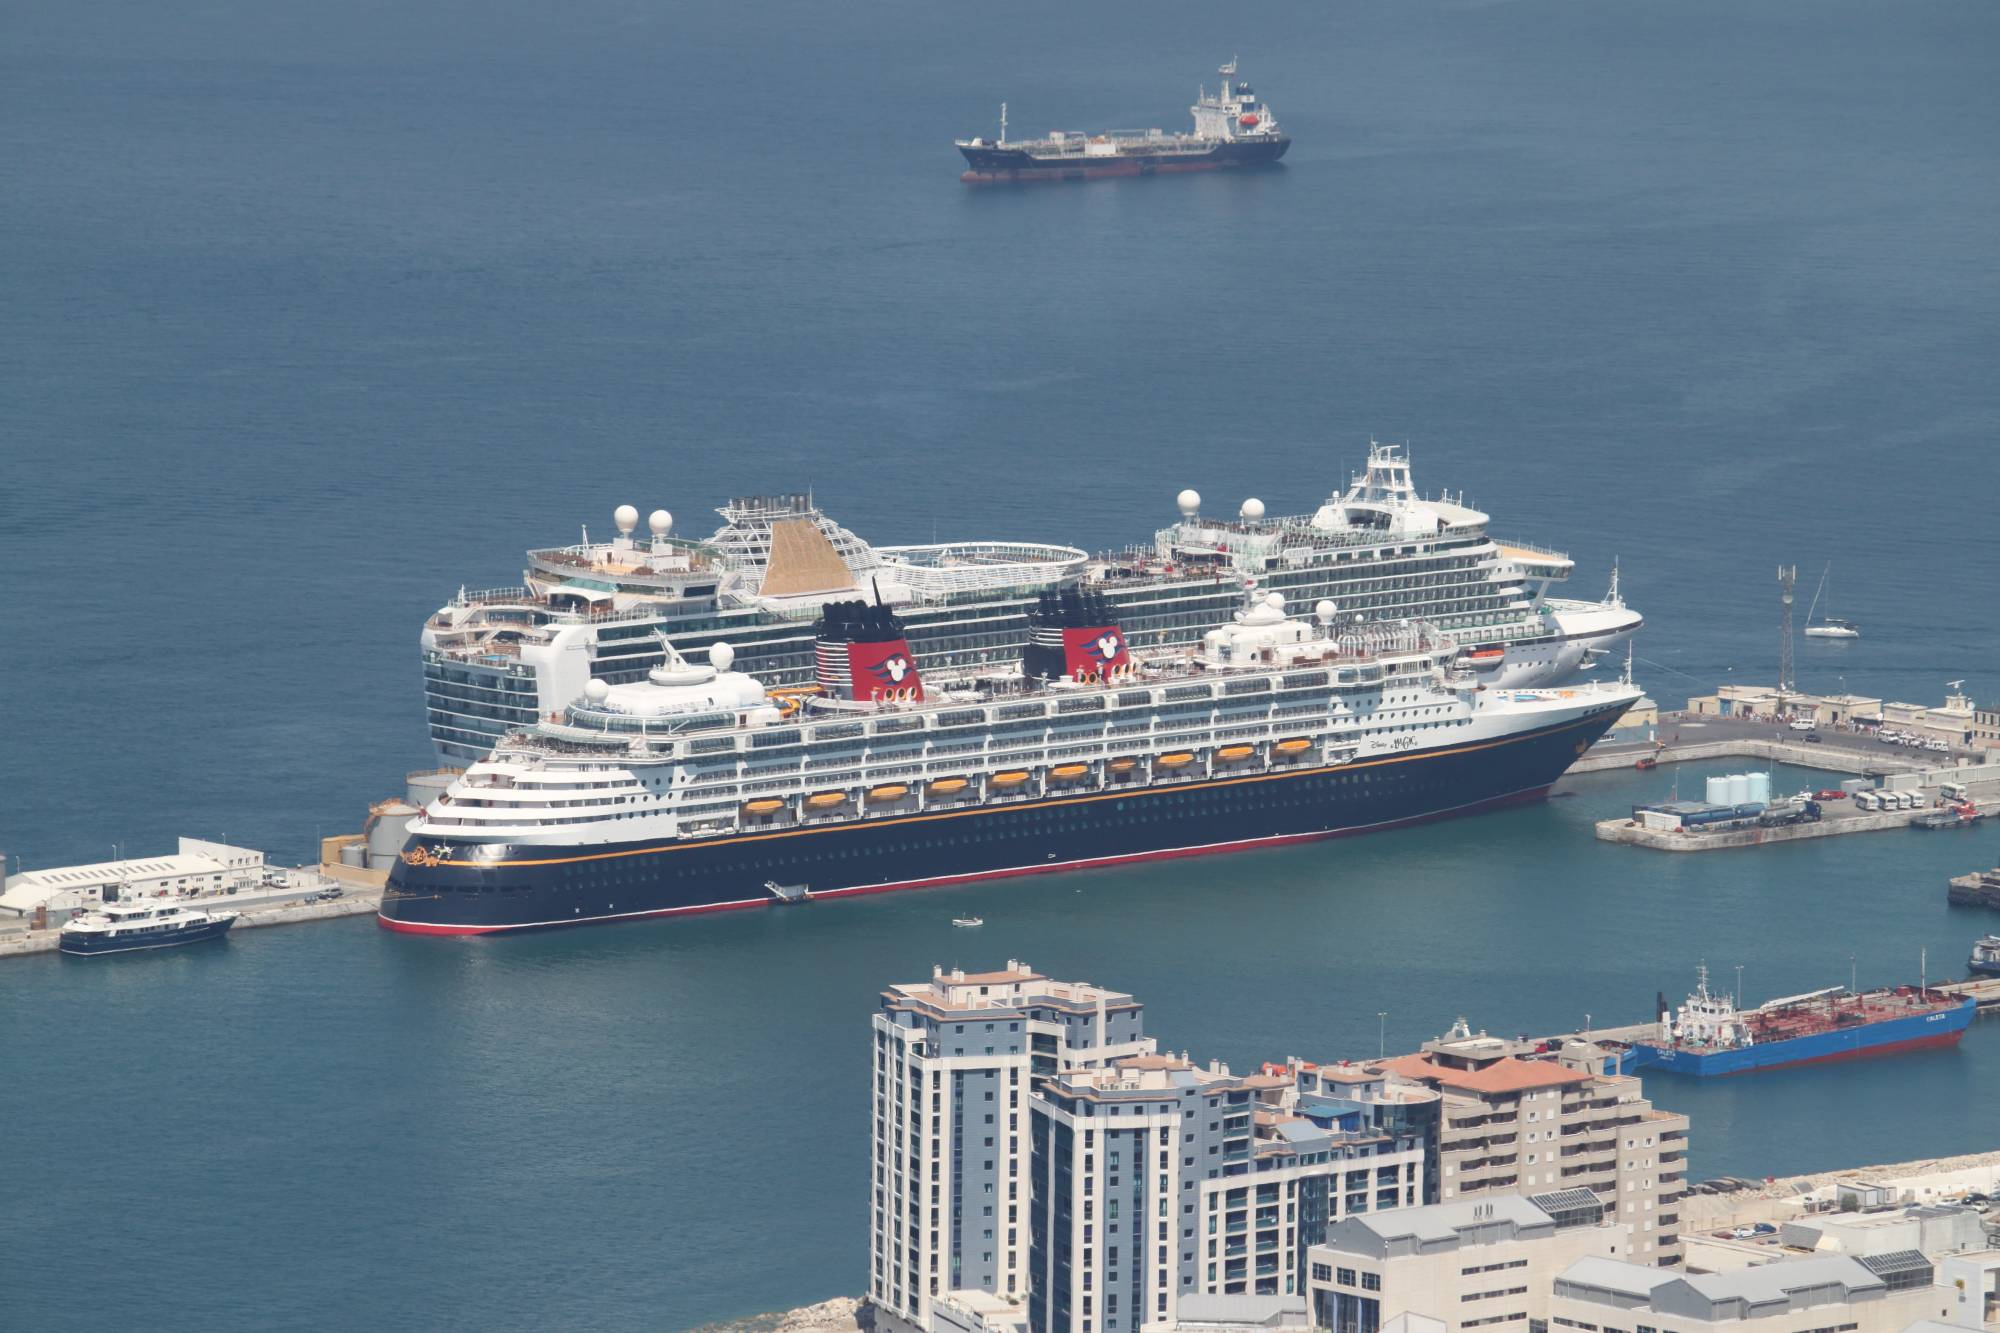 Explore the Iberian Peninsula with Disney Cruise Line | PassPorter.com